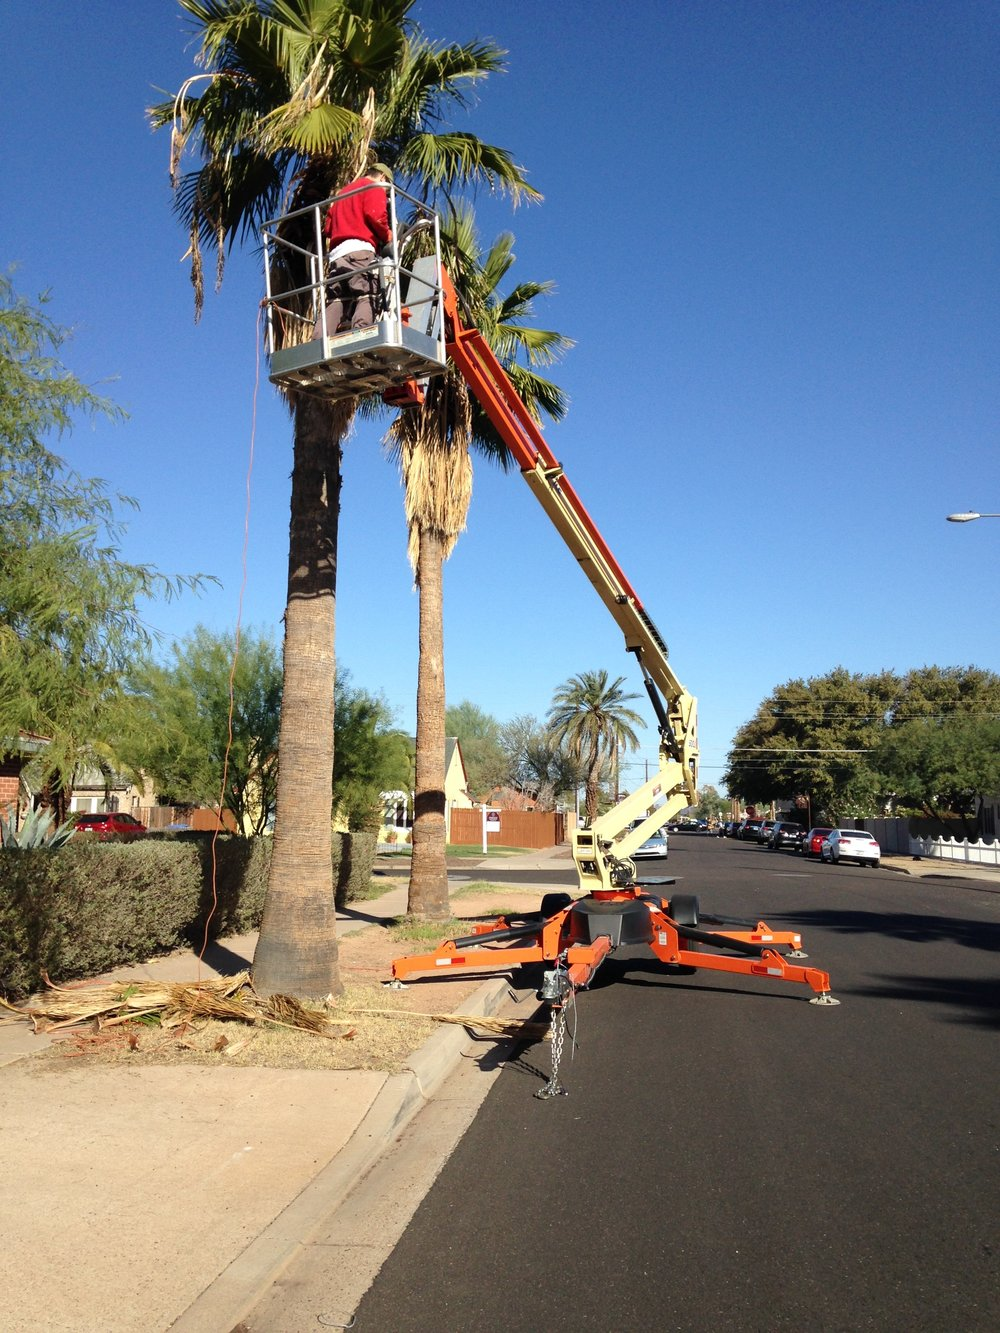 Who else would rent a 50 ft. boom lift to trim palm trees?